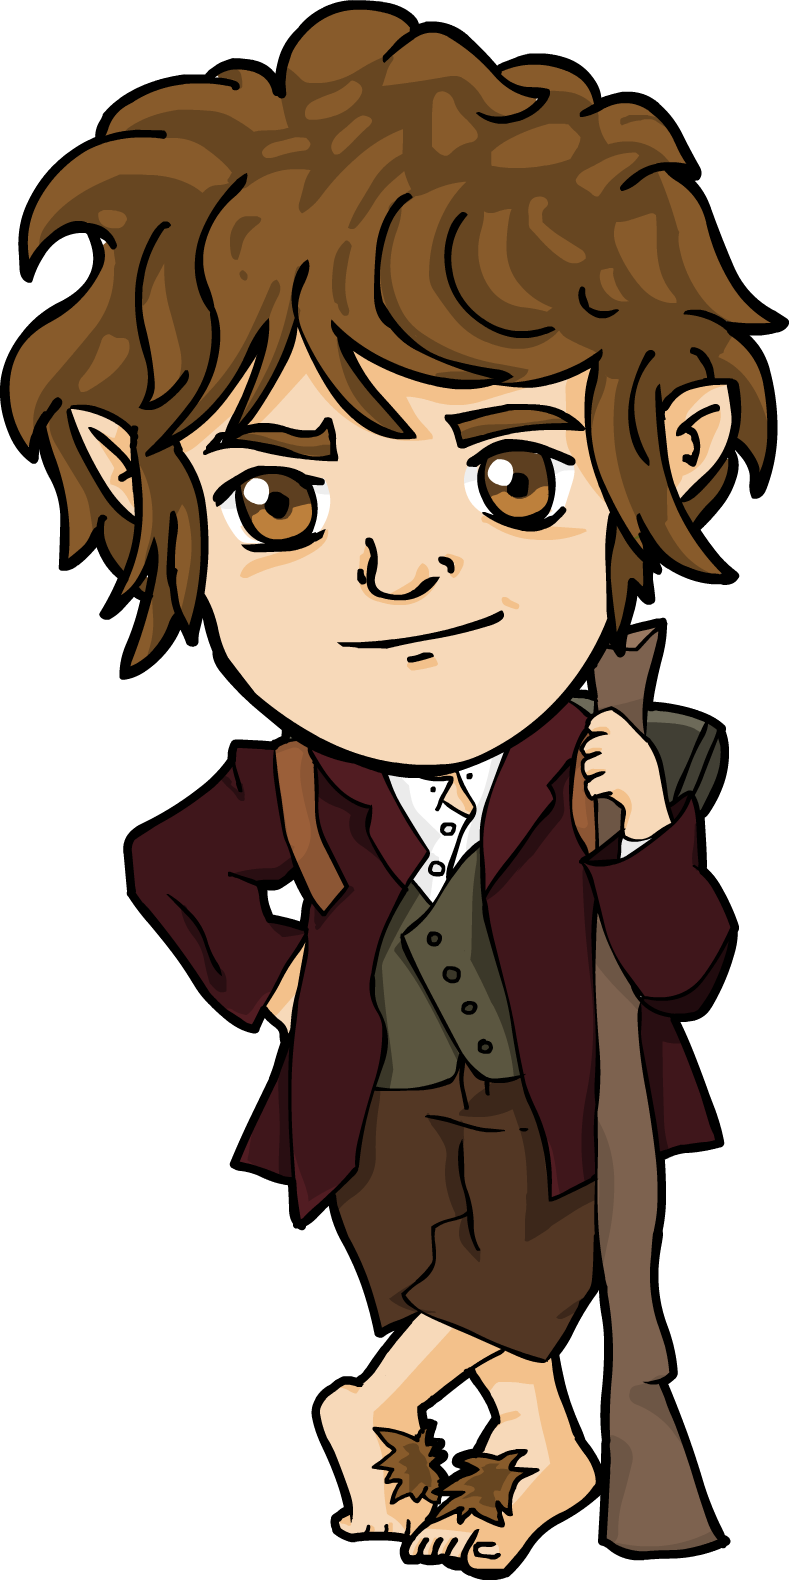 bilbo-baggins-the-hobbit-gandalf-frodo-baggins-cli-the-hobbit.png